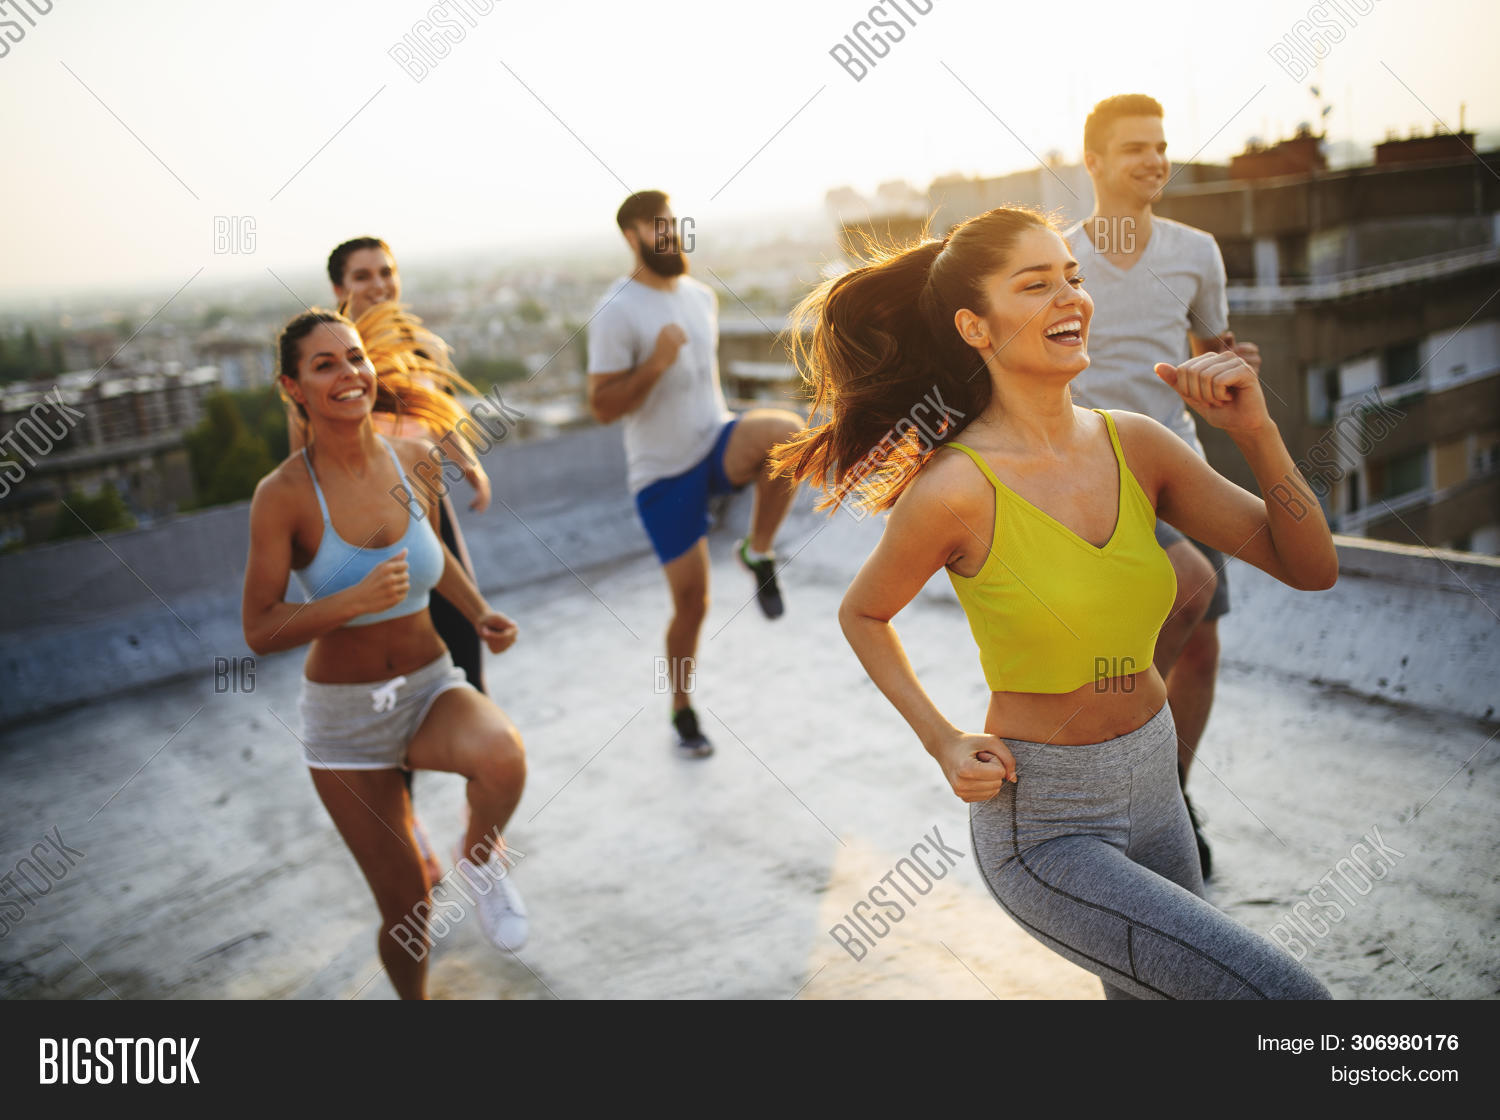 active,adult,athlete,athletic,beautiful,body,caucasian,class,coach,concept,energy,exercise,female,fit,fitness,friends,girl,group,happy,health,healthy,lifestyle,male,man,men,nature,outdoors,outside,people,person,sport,sportswear,sporty,stretching,summer,sunset,team,together,trainer,training,woman,women,working,workout,young